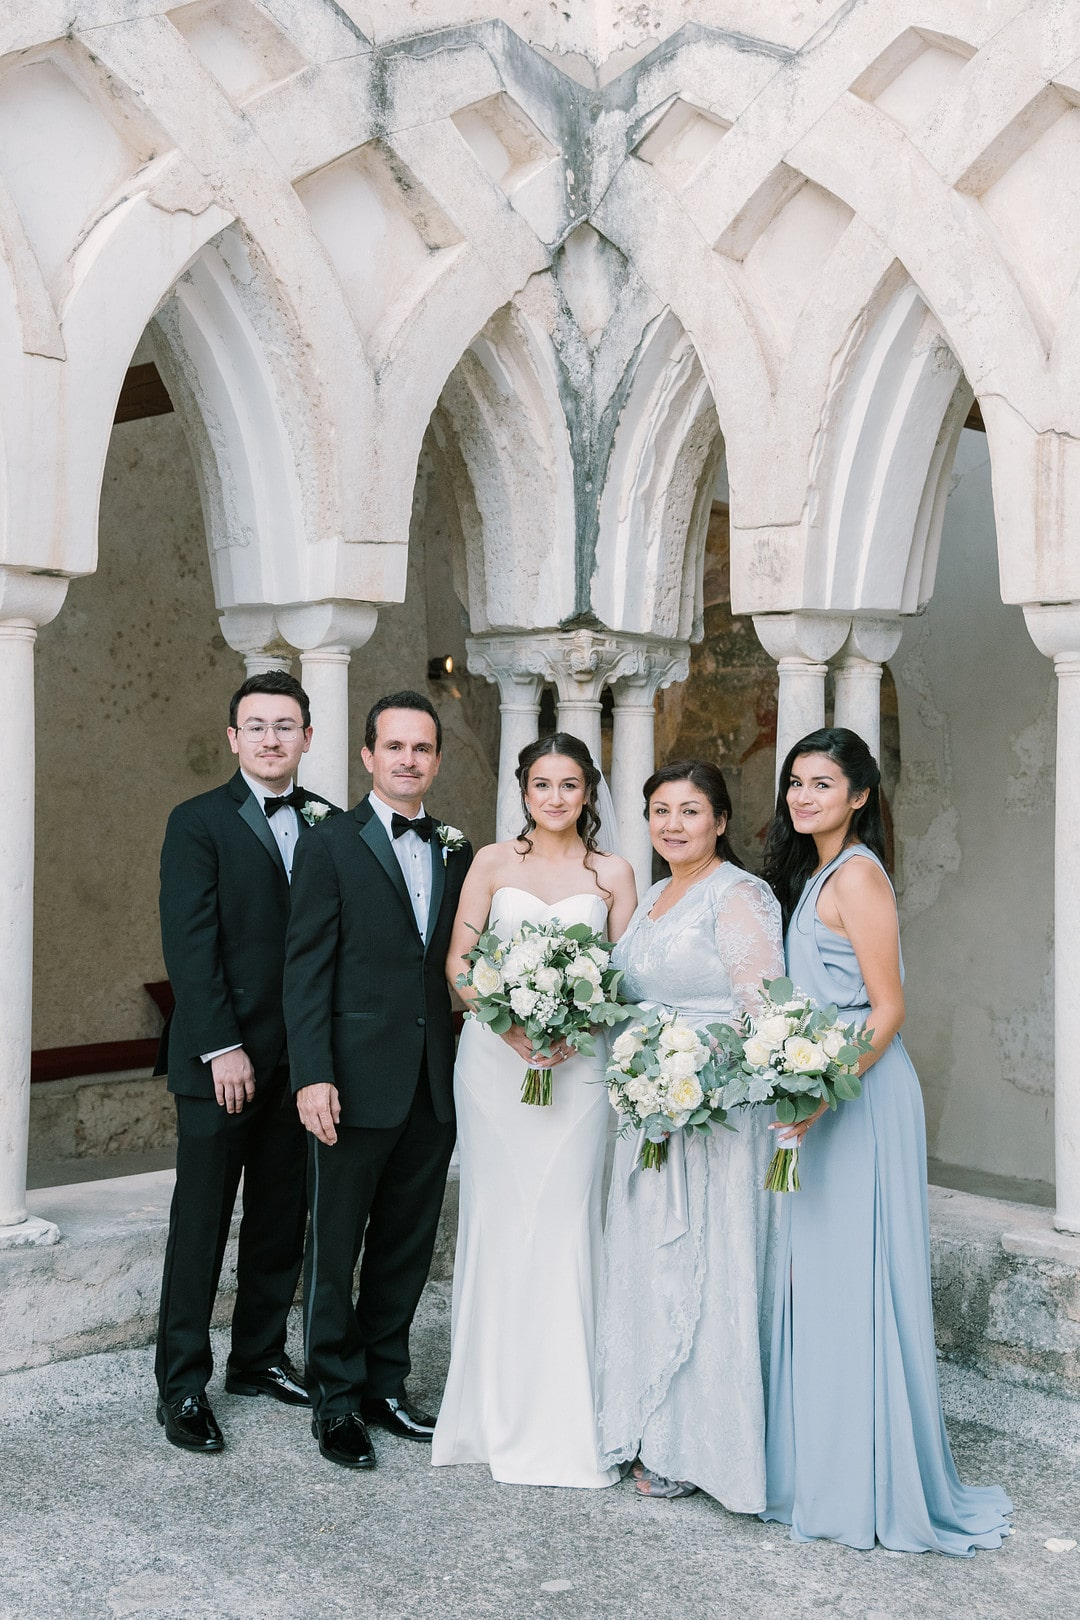 A Dreamy Floral Filled Destination Wedding with Blue & Neutral Tones, Photography by Andrea Gallucci Photographer